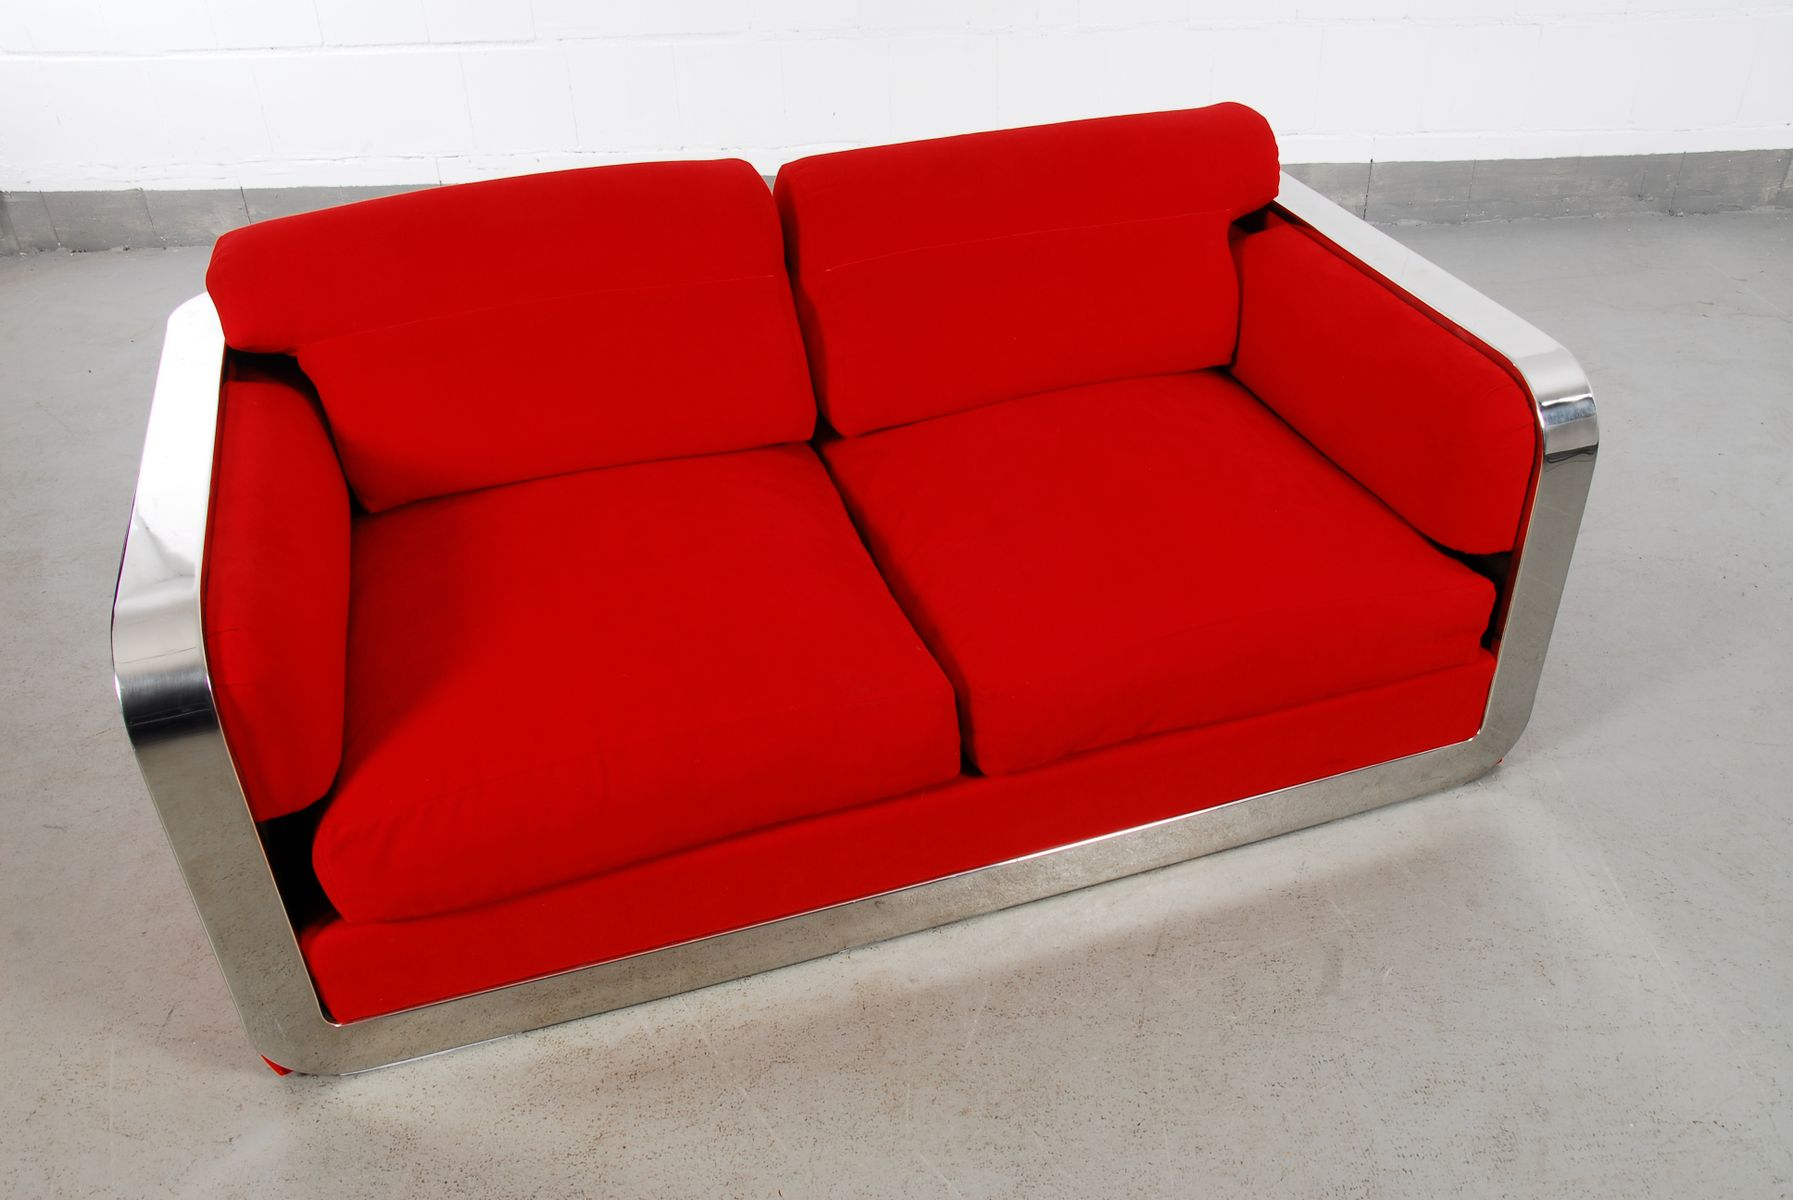 sofa upholstery singapore charles of london definition vintage italian two-seater & three-seater set from ...